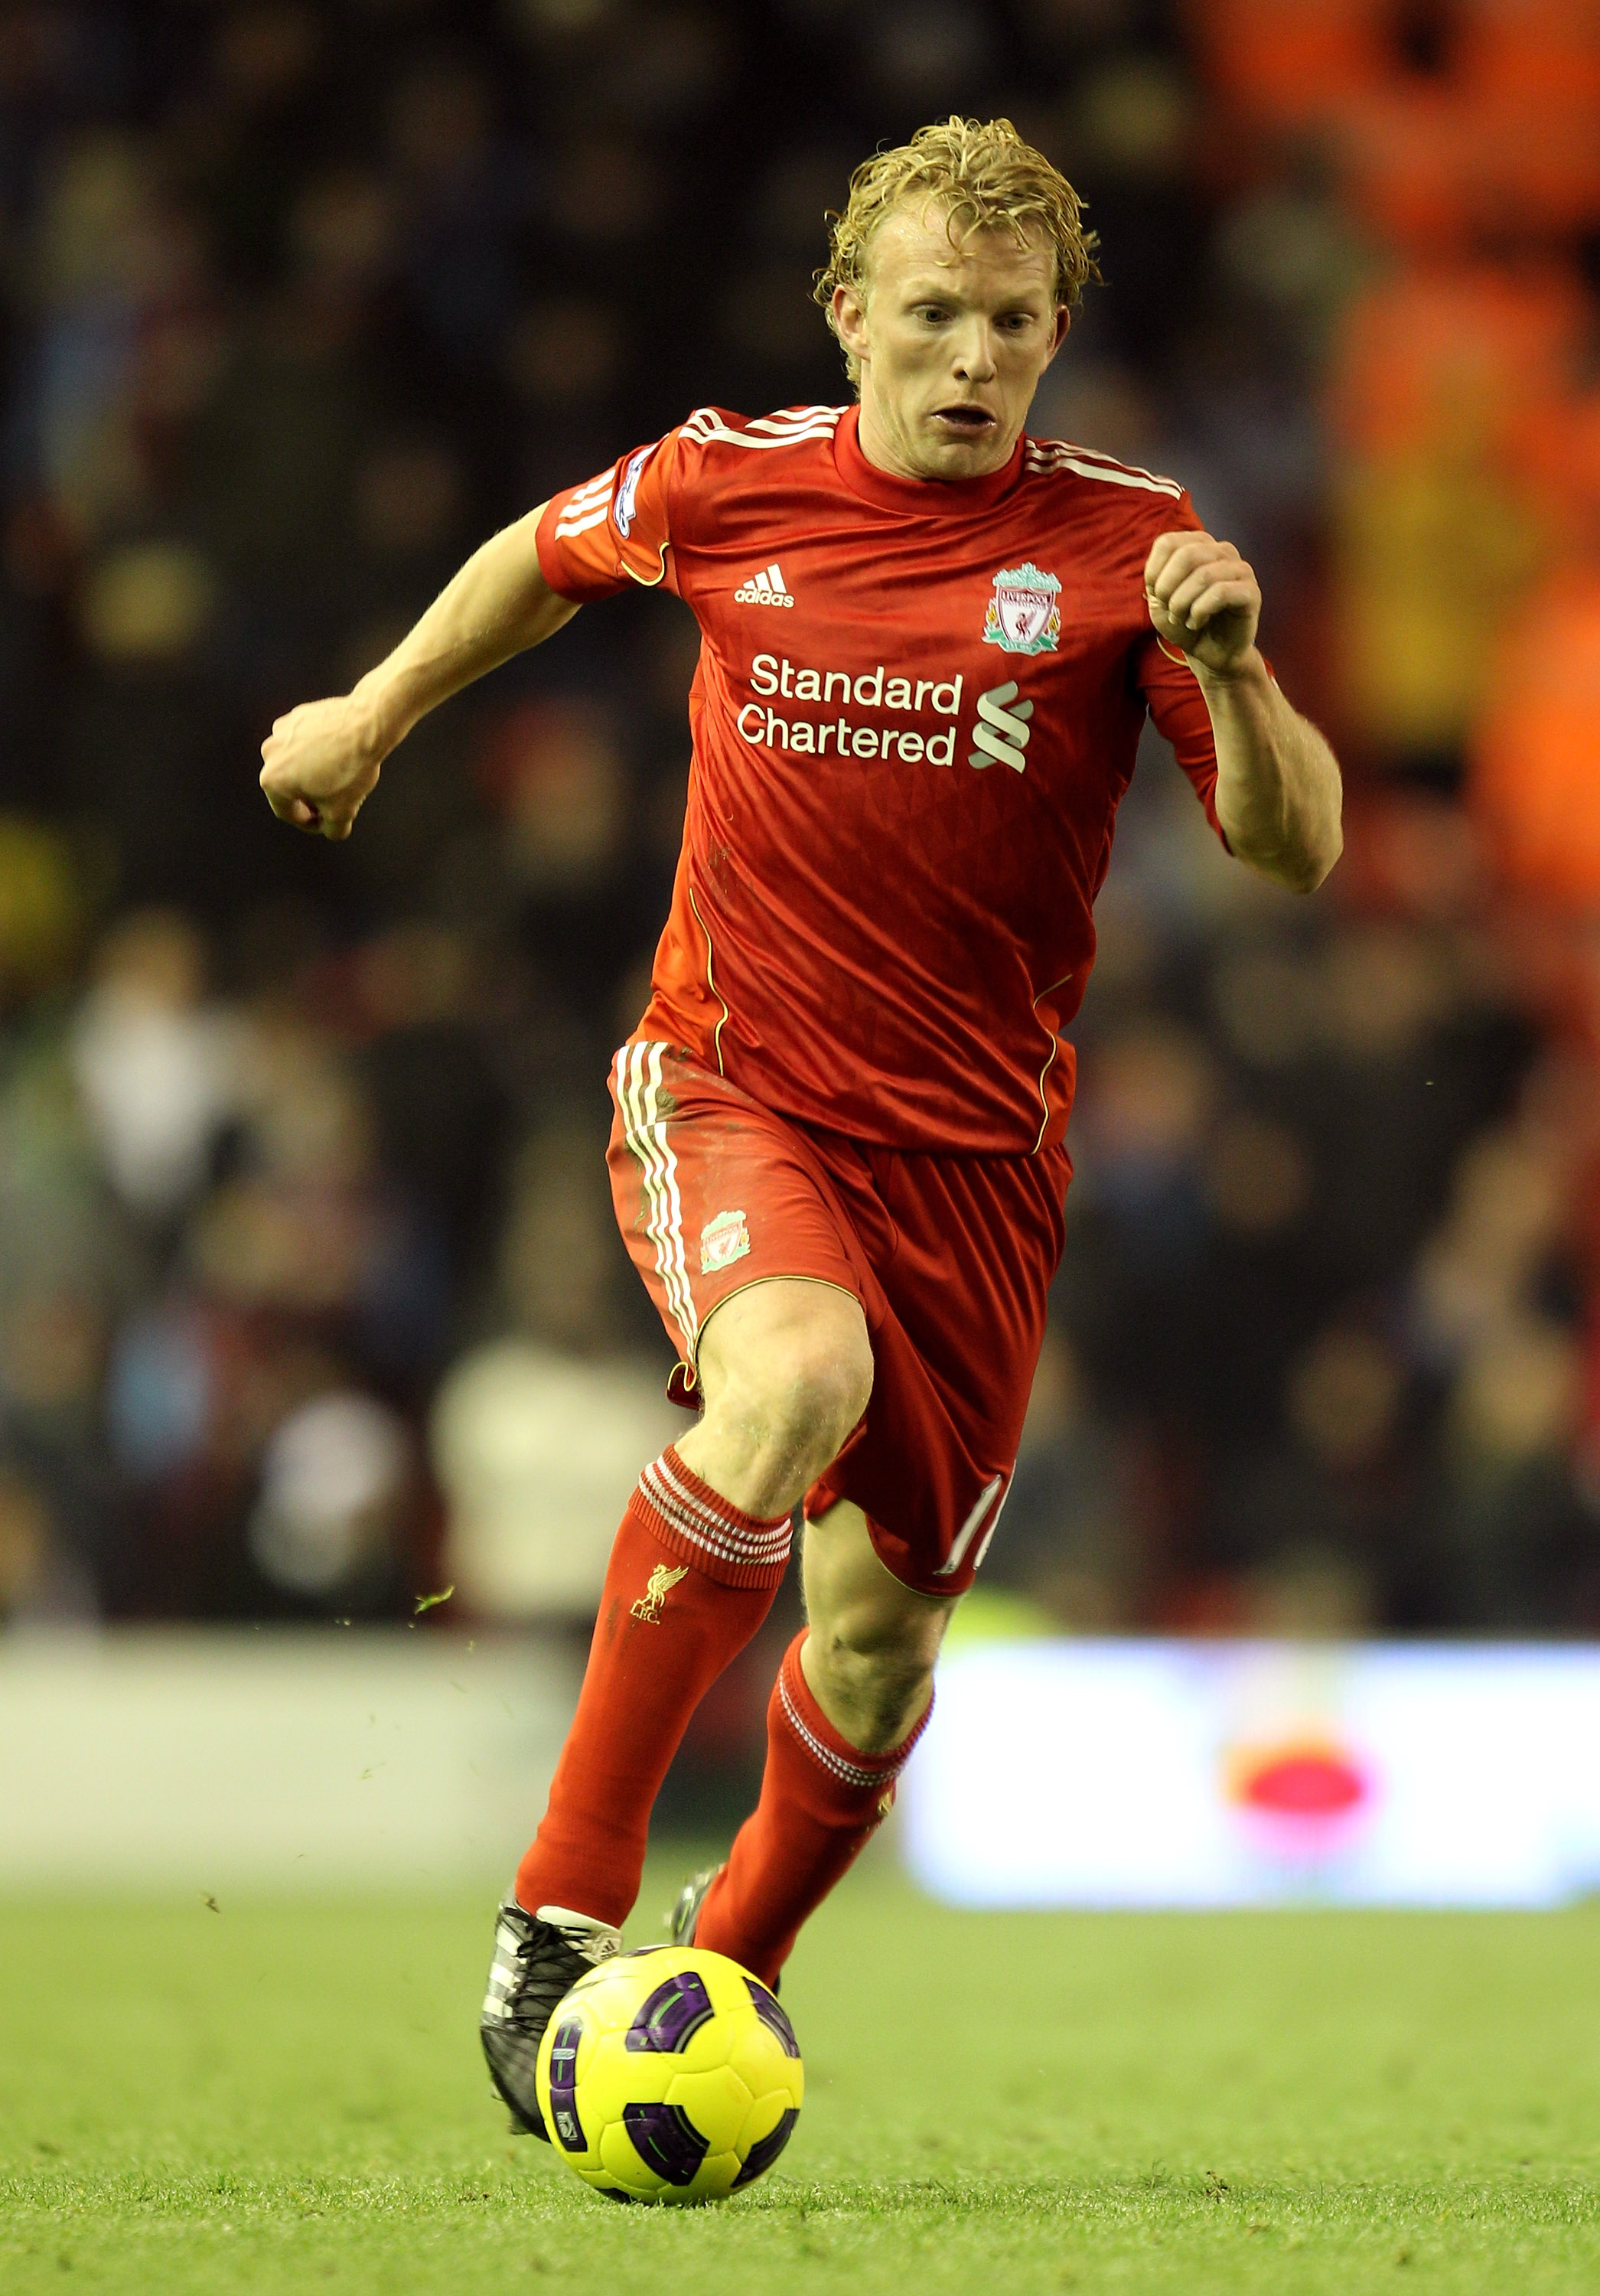 LIVERPOOL, ENGLAND - DECEMBER 06:  Dirk Kuyt of Liverpool in action during the Barclays Premier League match between Liverpool and Aston Villa at Anfield on December 6, 2010 in Liverpool, England. (Photo by Mark Thompson/Getty Images)